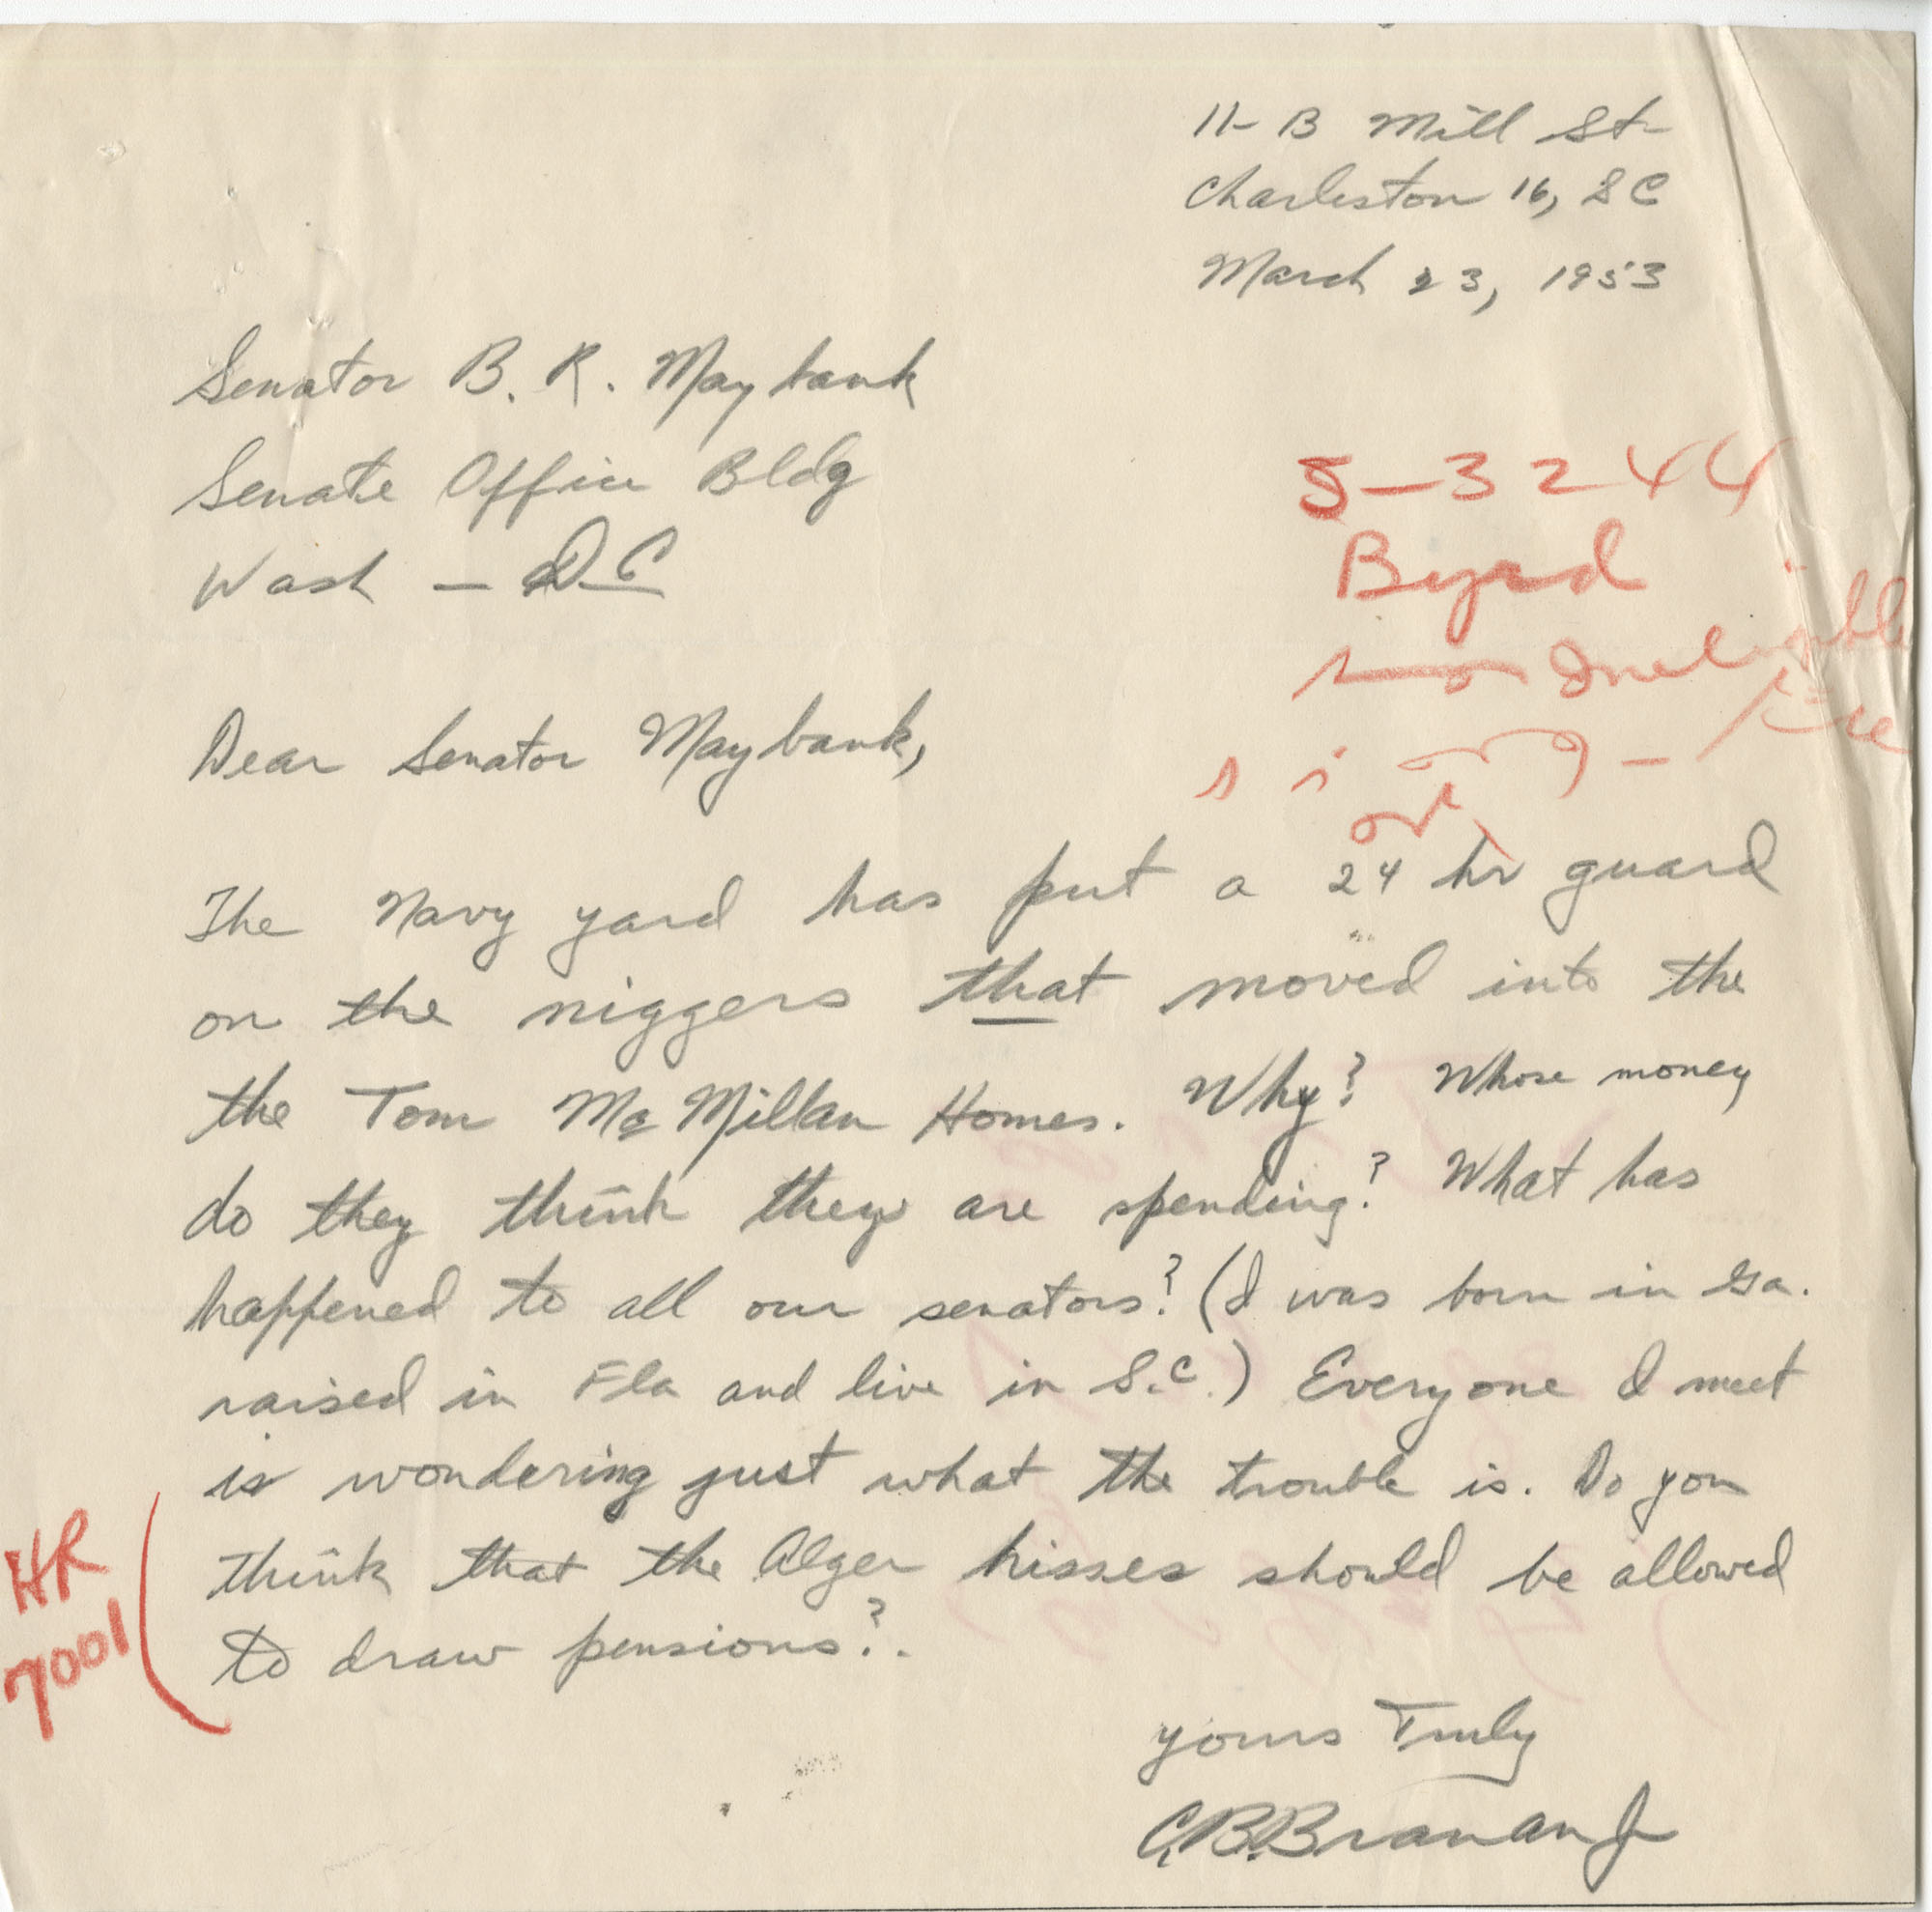 Segregation: Correspondence between C. B. Branan Jr. and Senator Burnet R. Maybank, March-April 1954